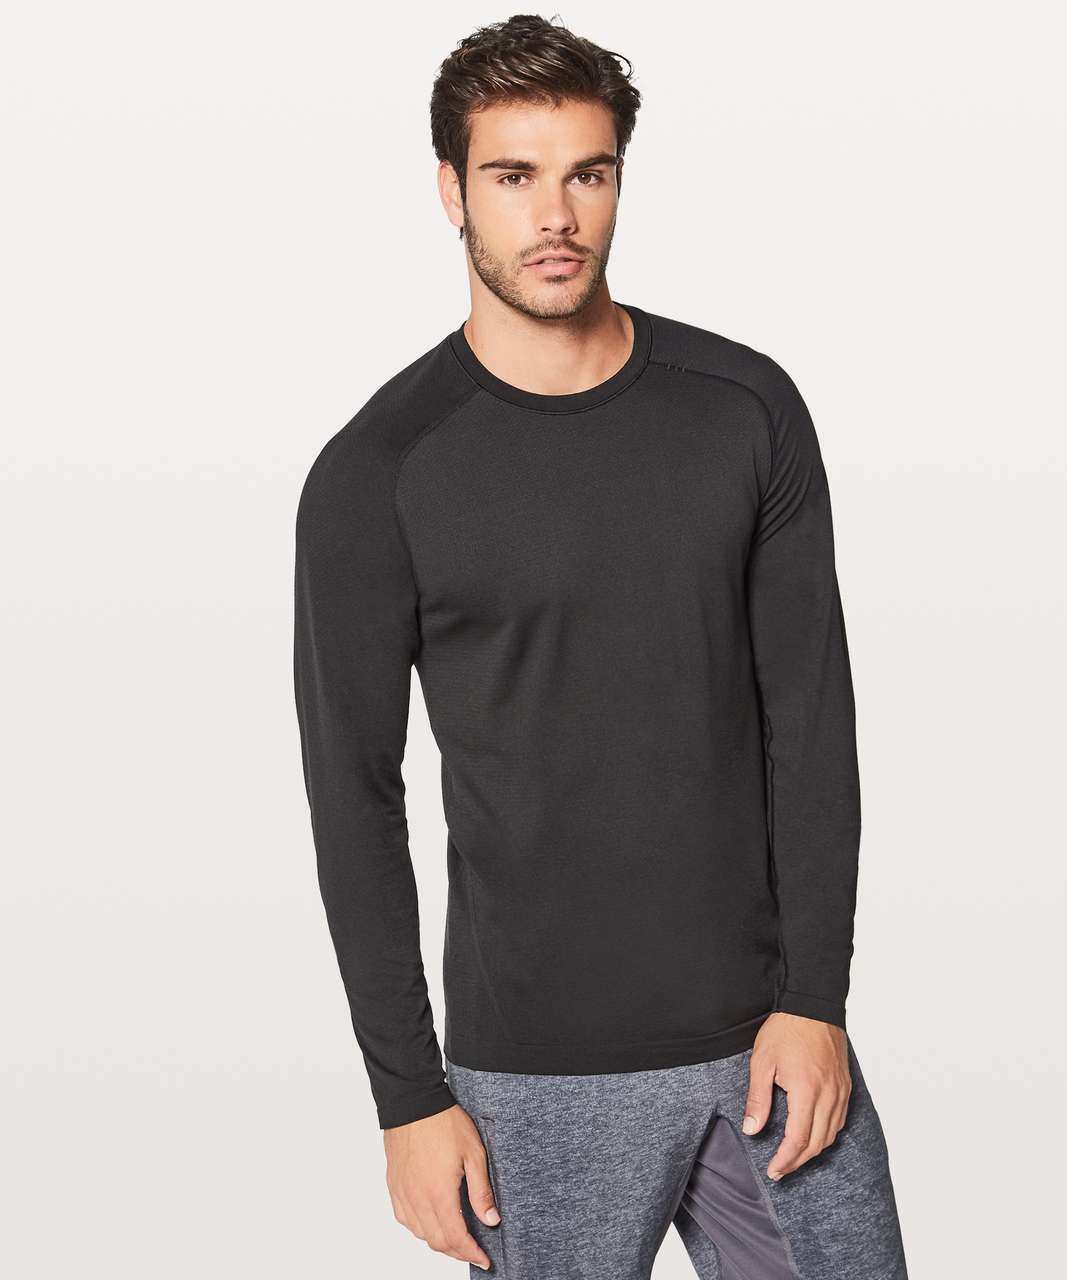 bbf7fd4ff Lululemon Metal Vent Tech Long Sleeve - Black   Black - lulu fanatics